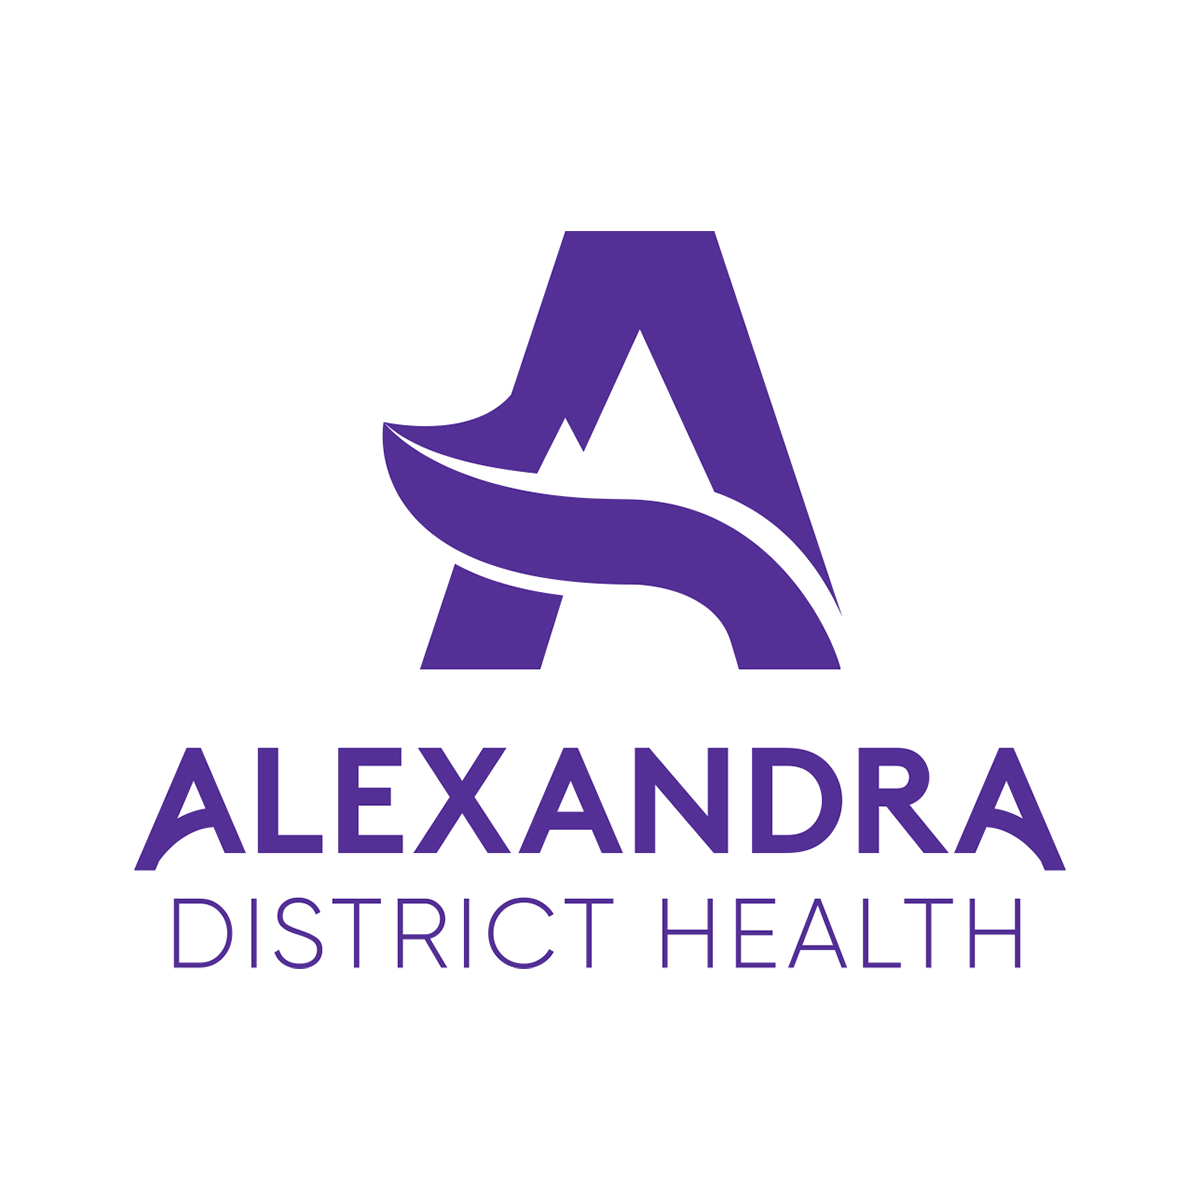 Alexandra District Health